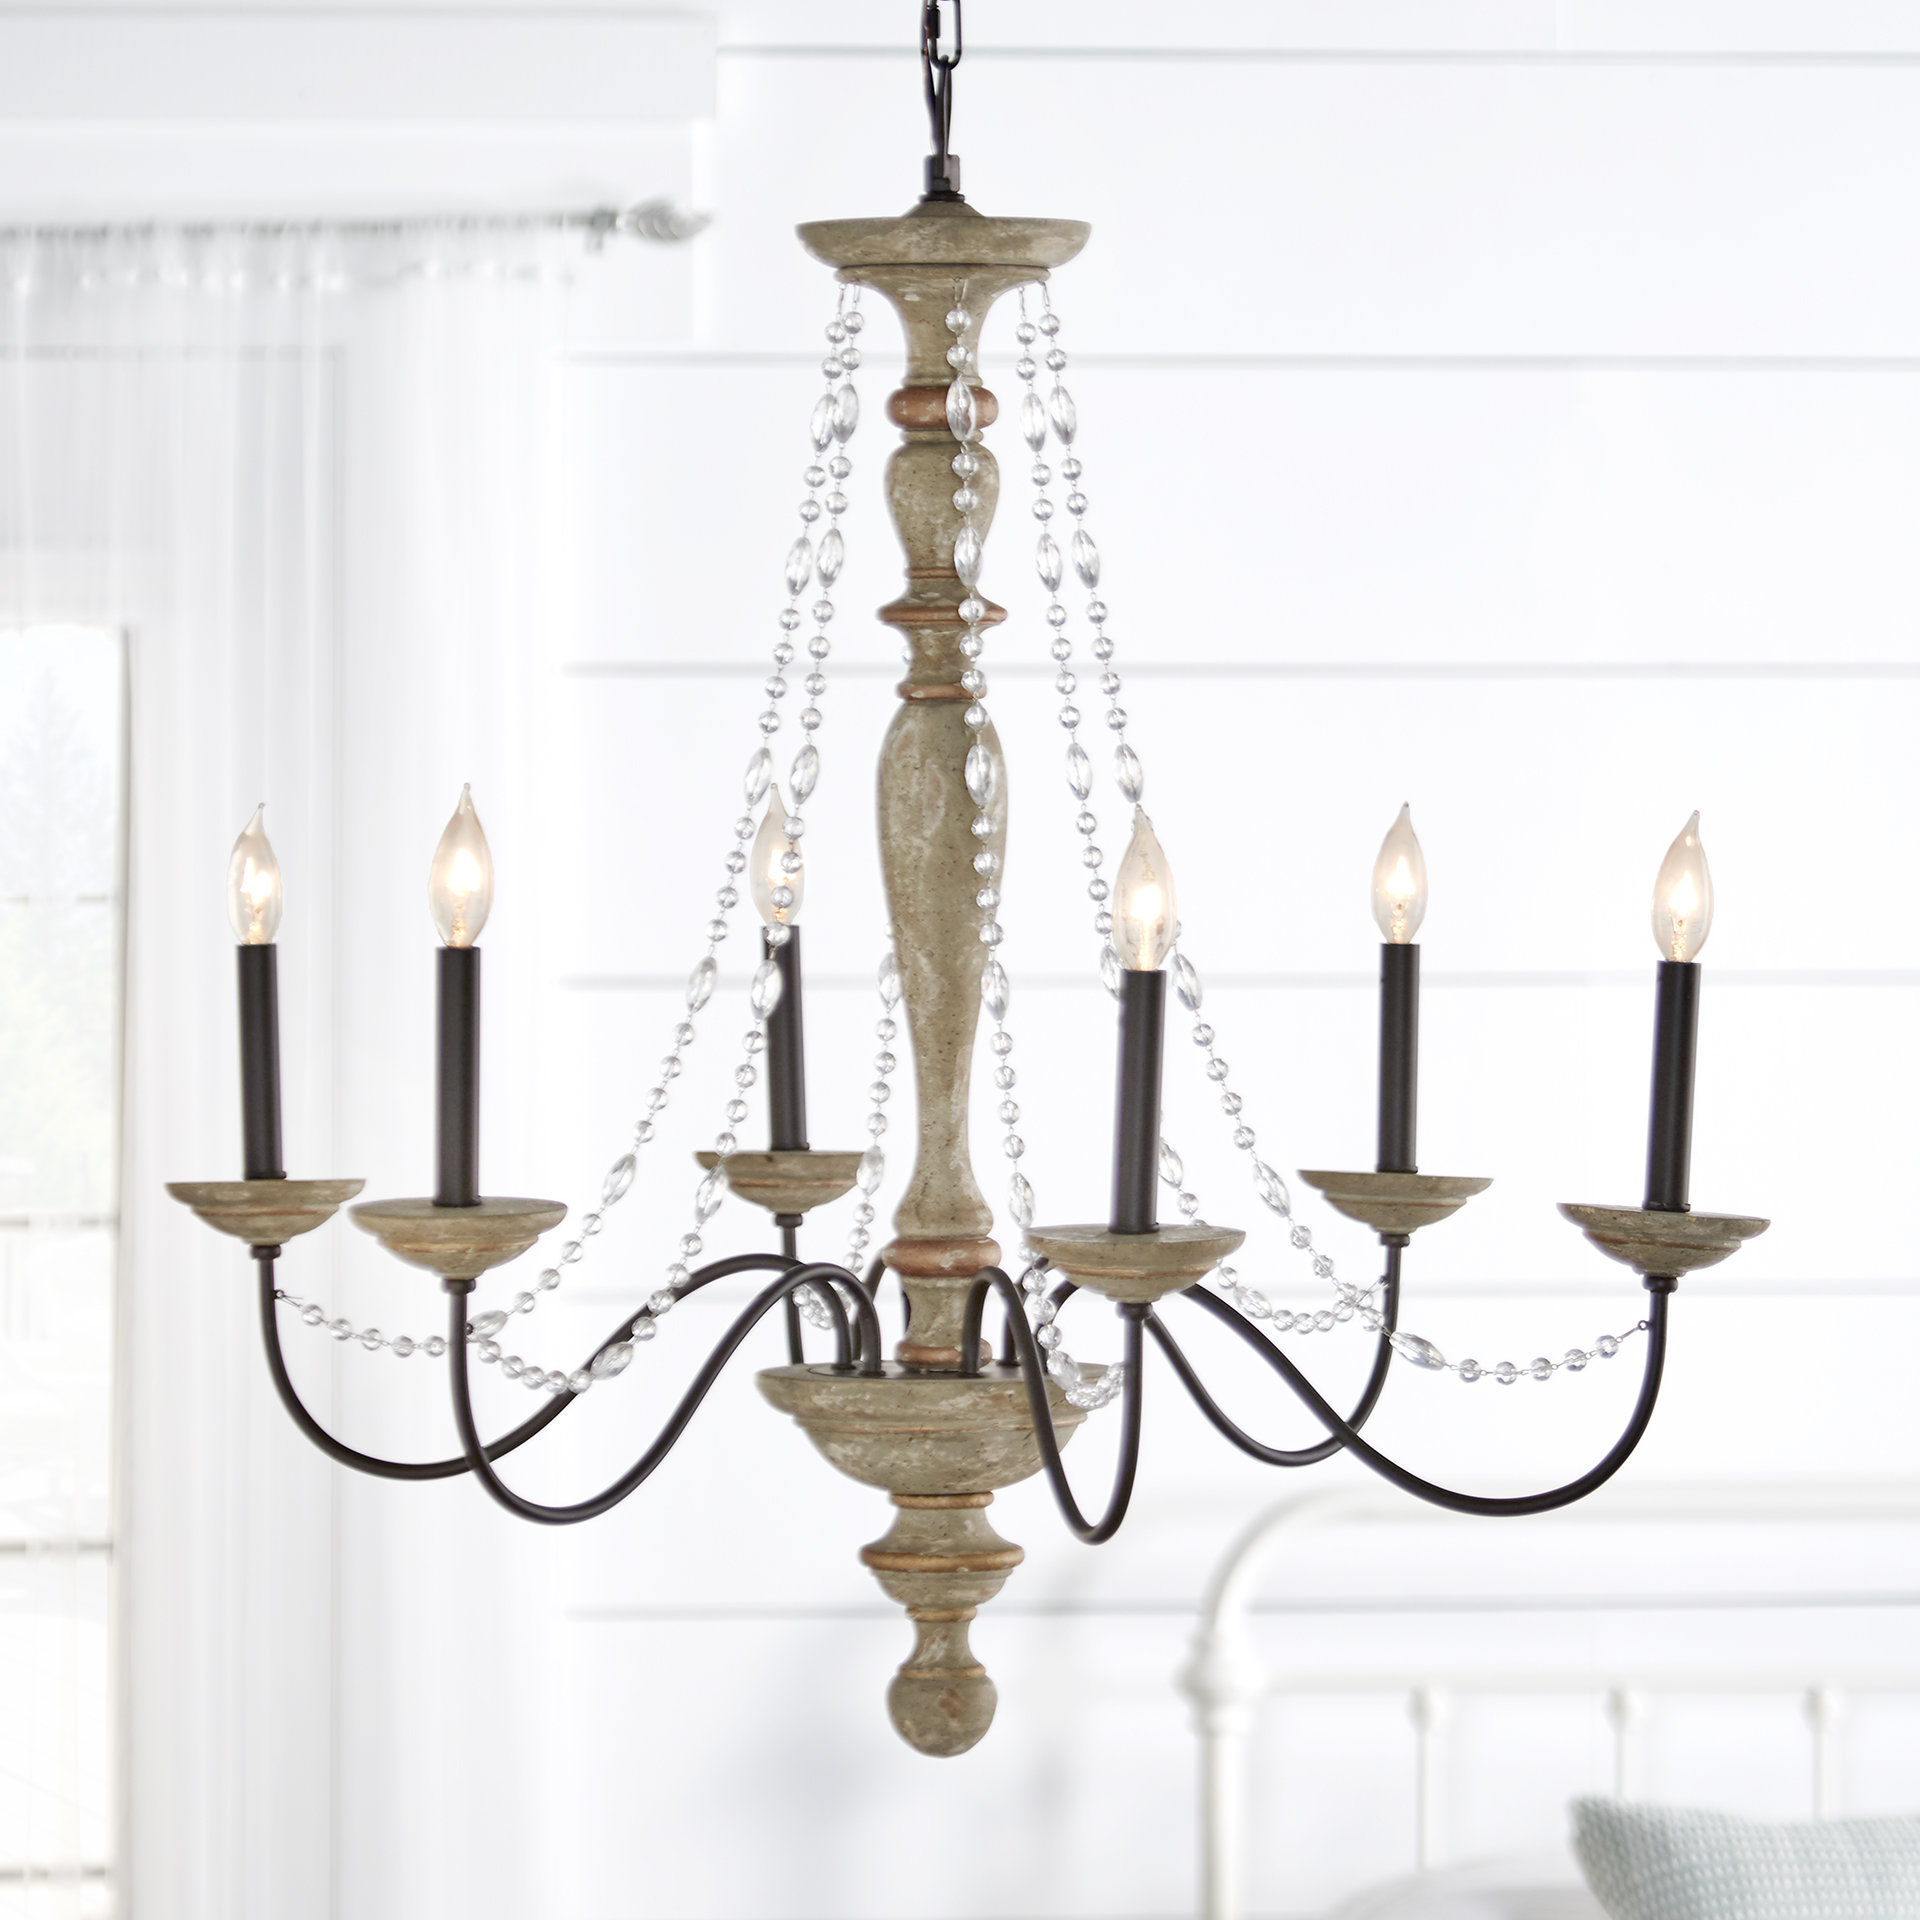 Three Posts Brennon 6 Light Candle Style Chandelier Intended For Latest Shaylee 8 Light Candle Style Chandeliers (View 21 of 25)